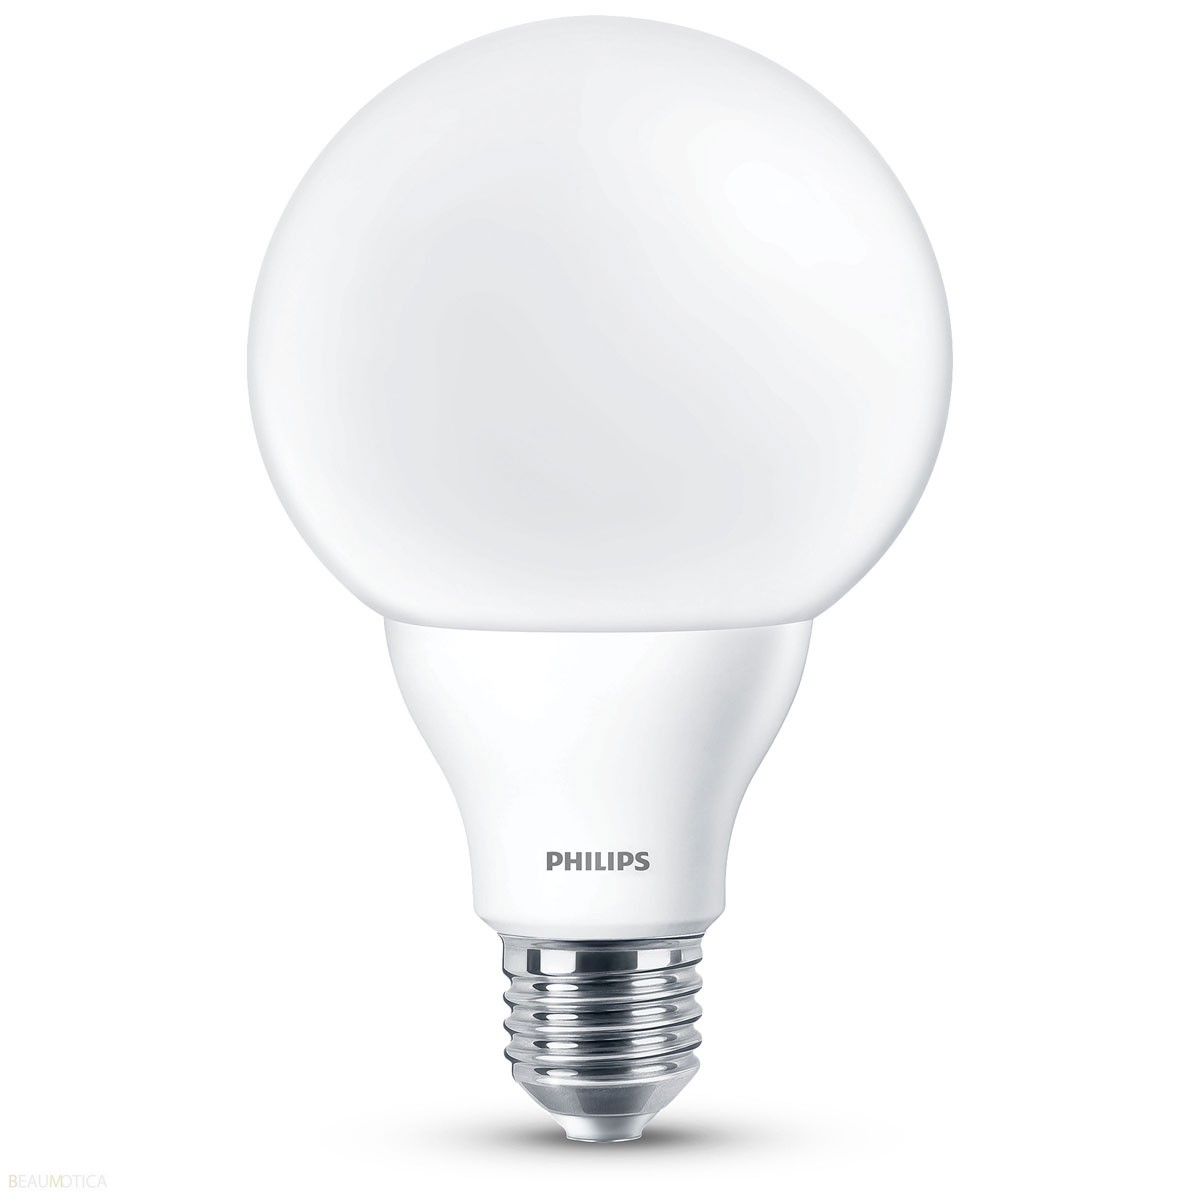 Philips led lamp e27 60w warm wit dimbaar led my bookmarks led lampen dimmen philips hue products e27 parisarafo Gallery